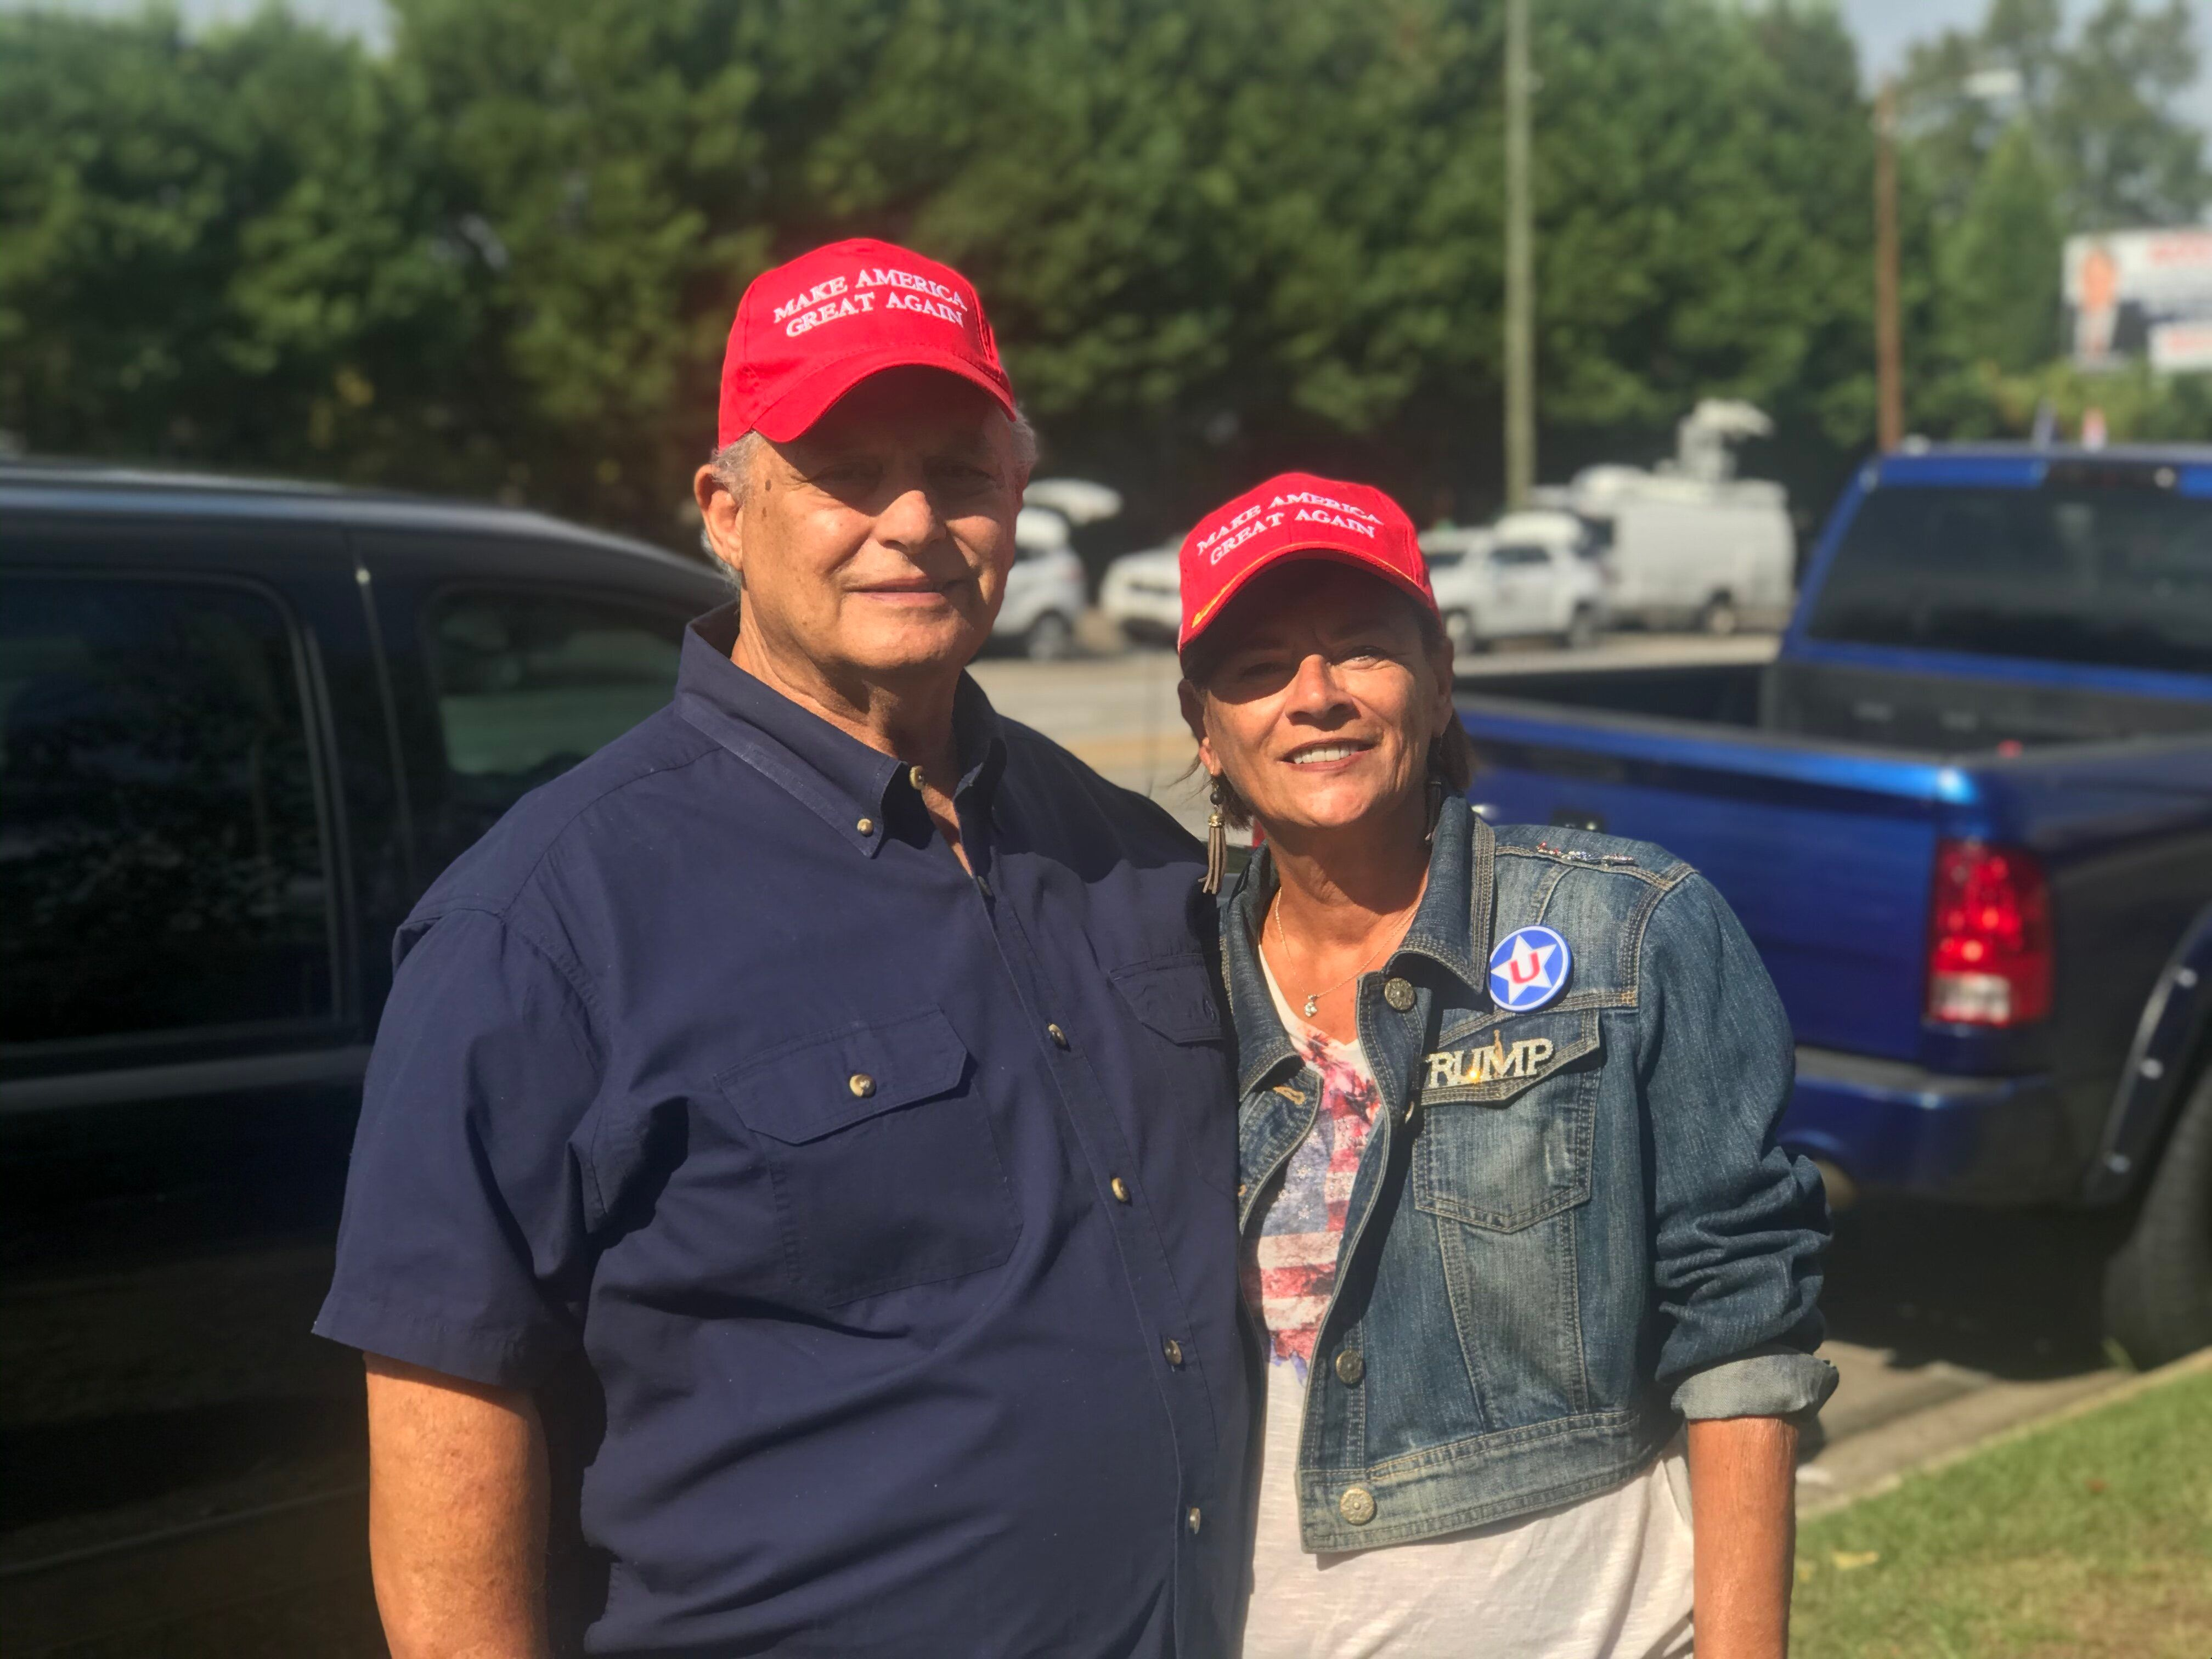 Danny and Cheryl Jackson attended Trump's criminal justice speech at Benedict College.